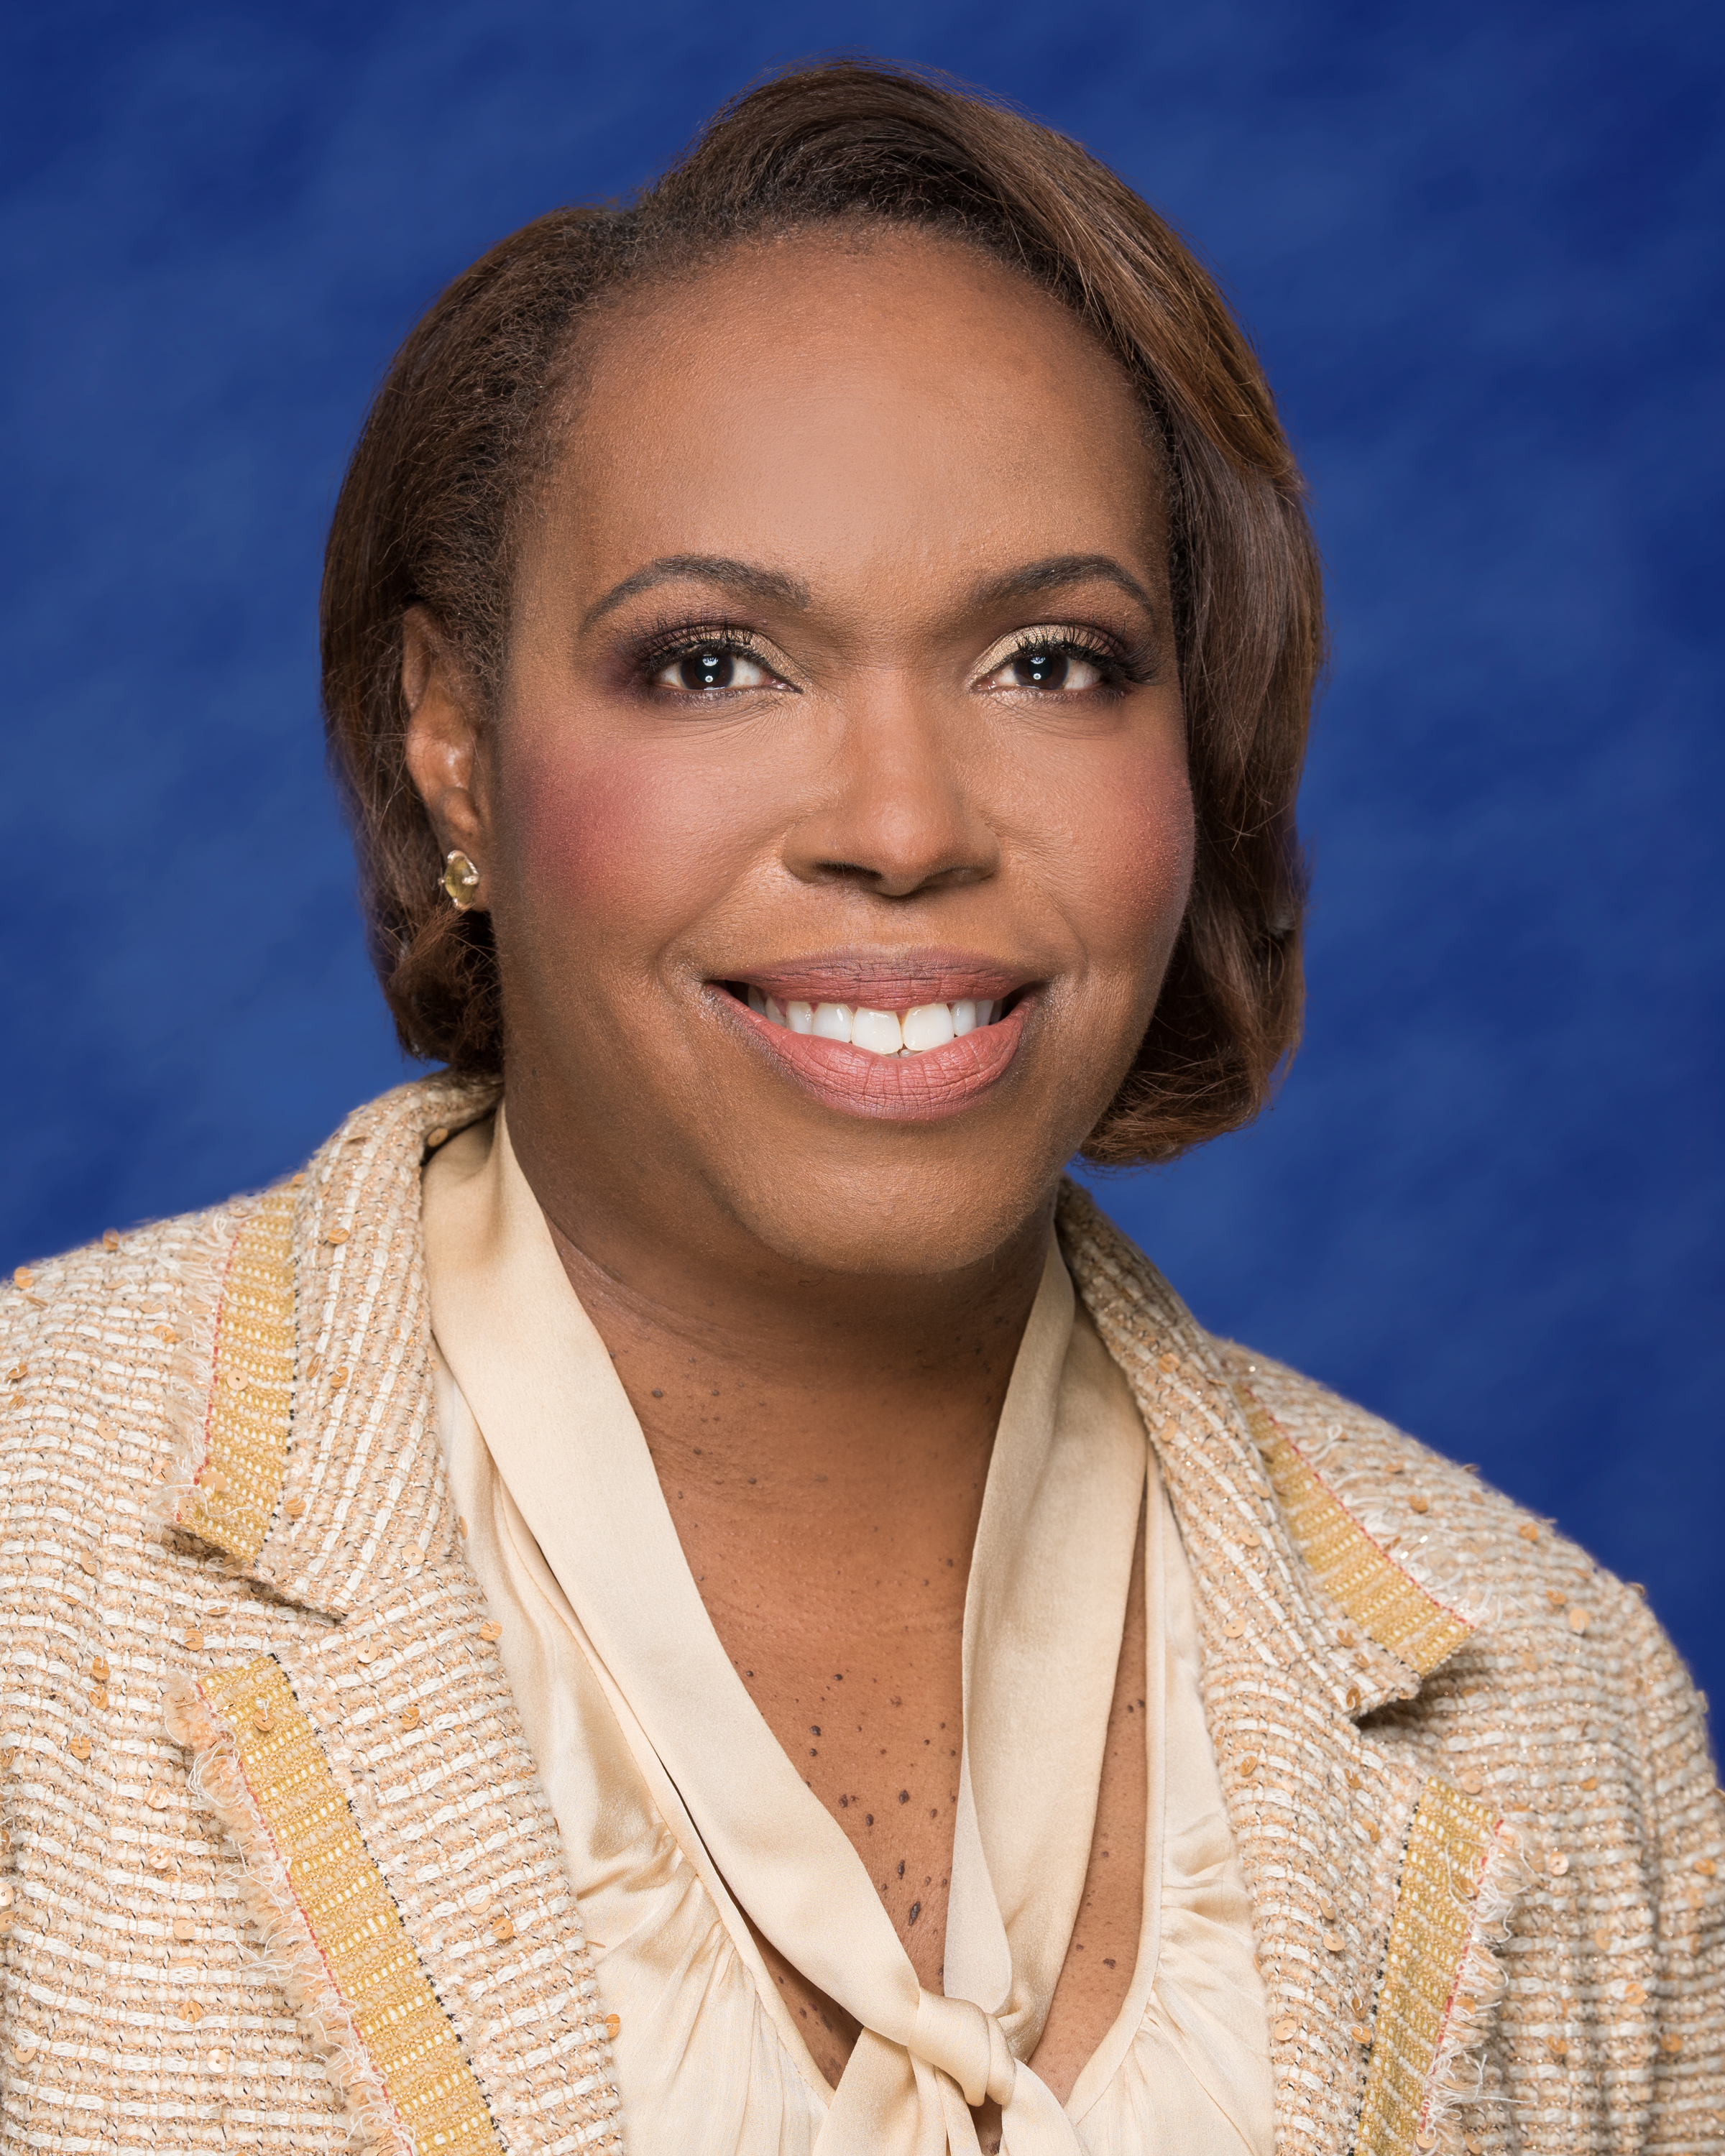 Rhonda Mims, Senior Vice President, Chief Public Affairs Officer